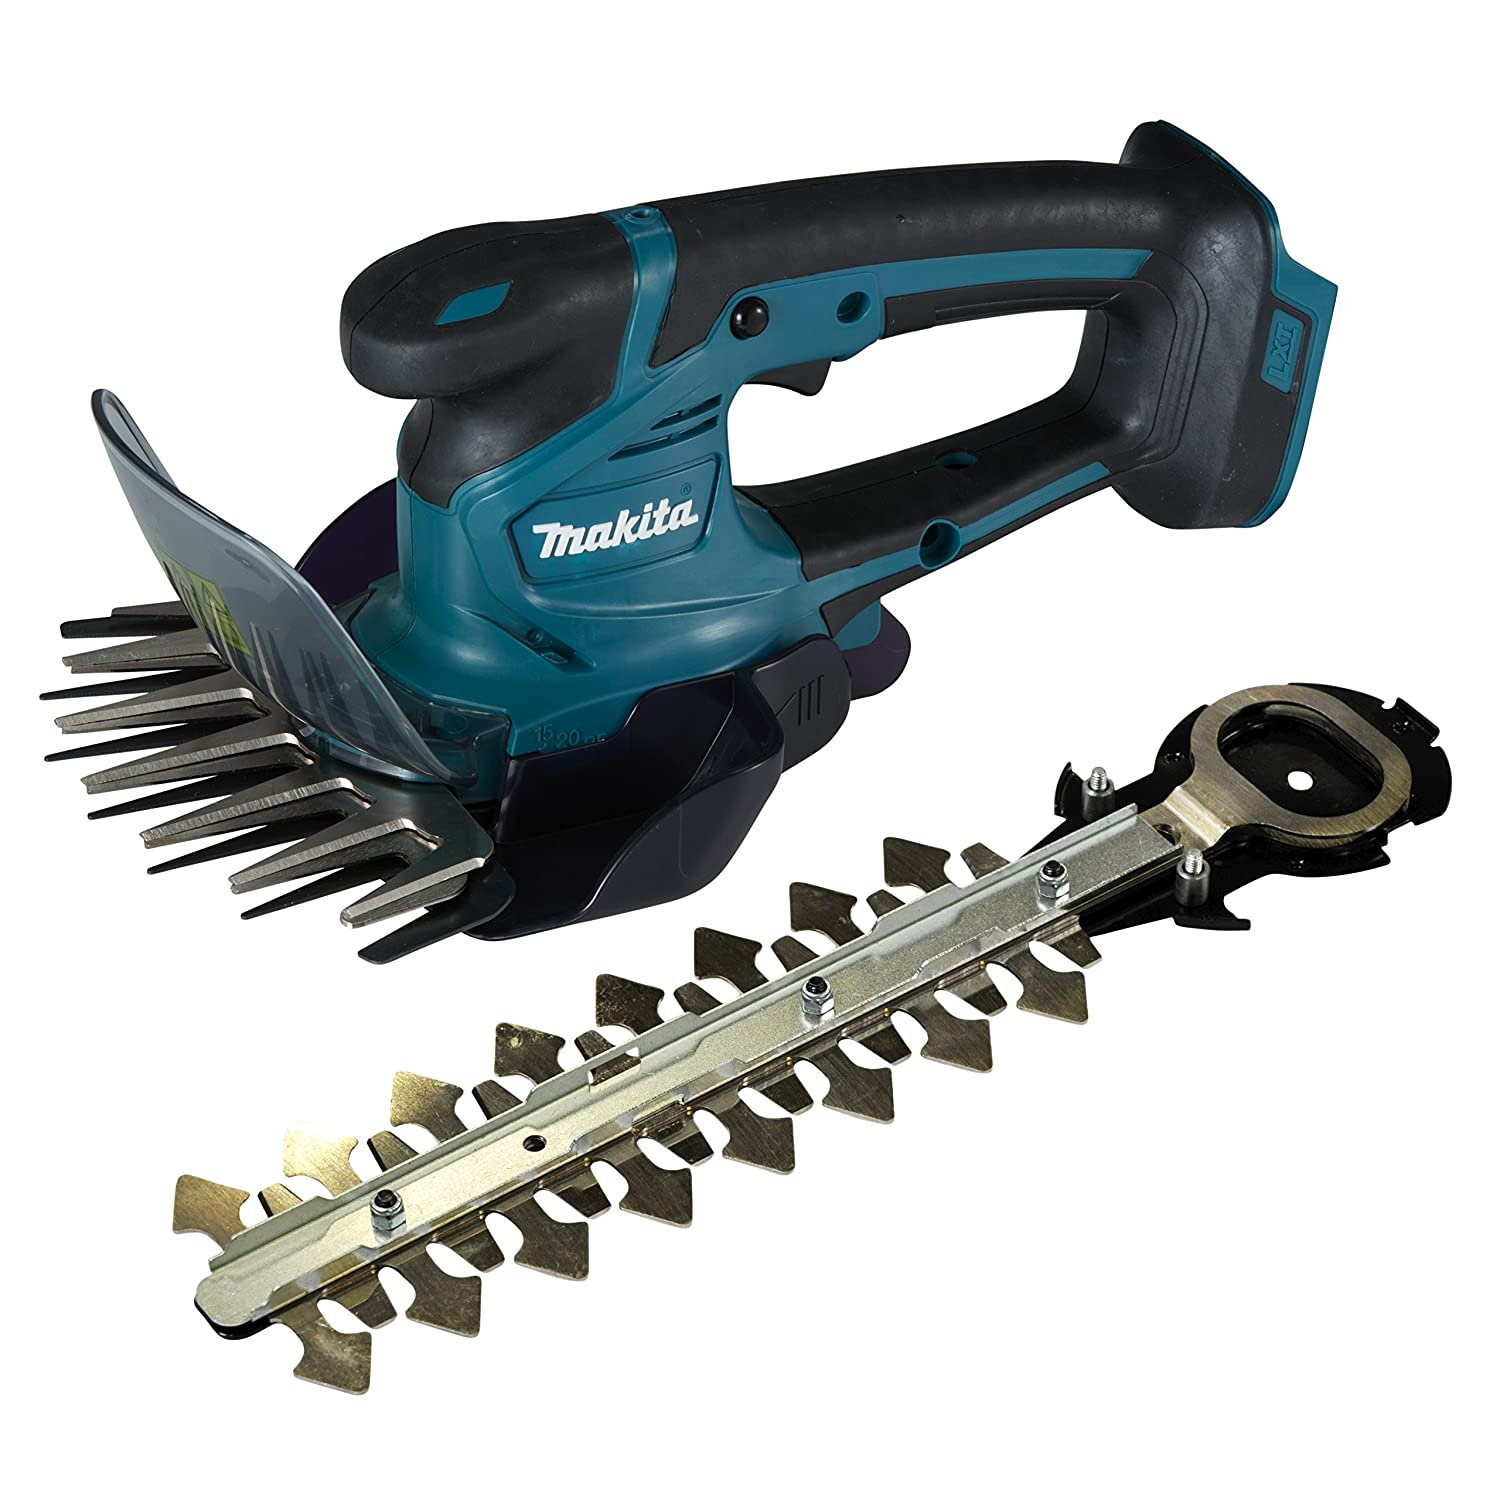 Makita Cordless Grass Shear (18 V, Without Battery and Charger not Included) DUM604ZX